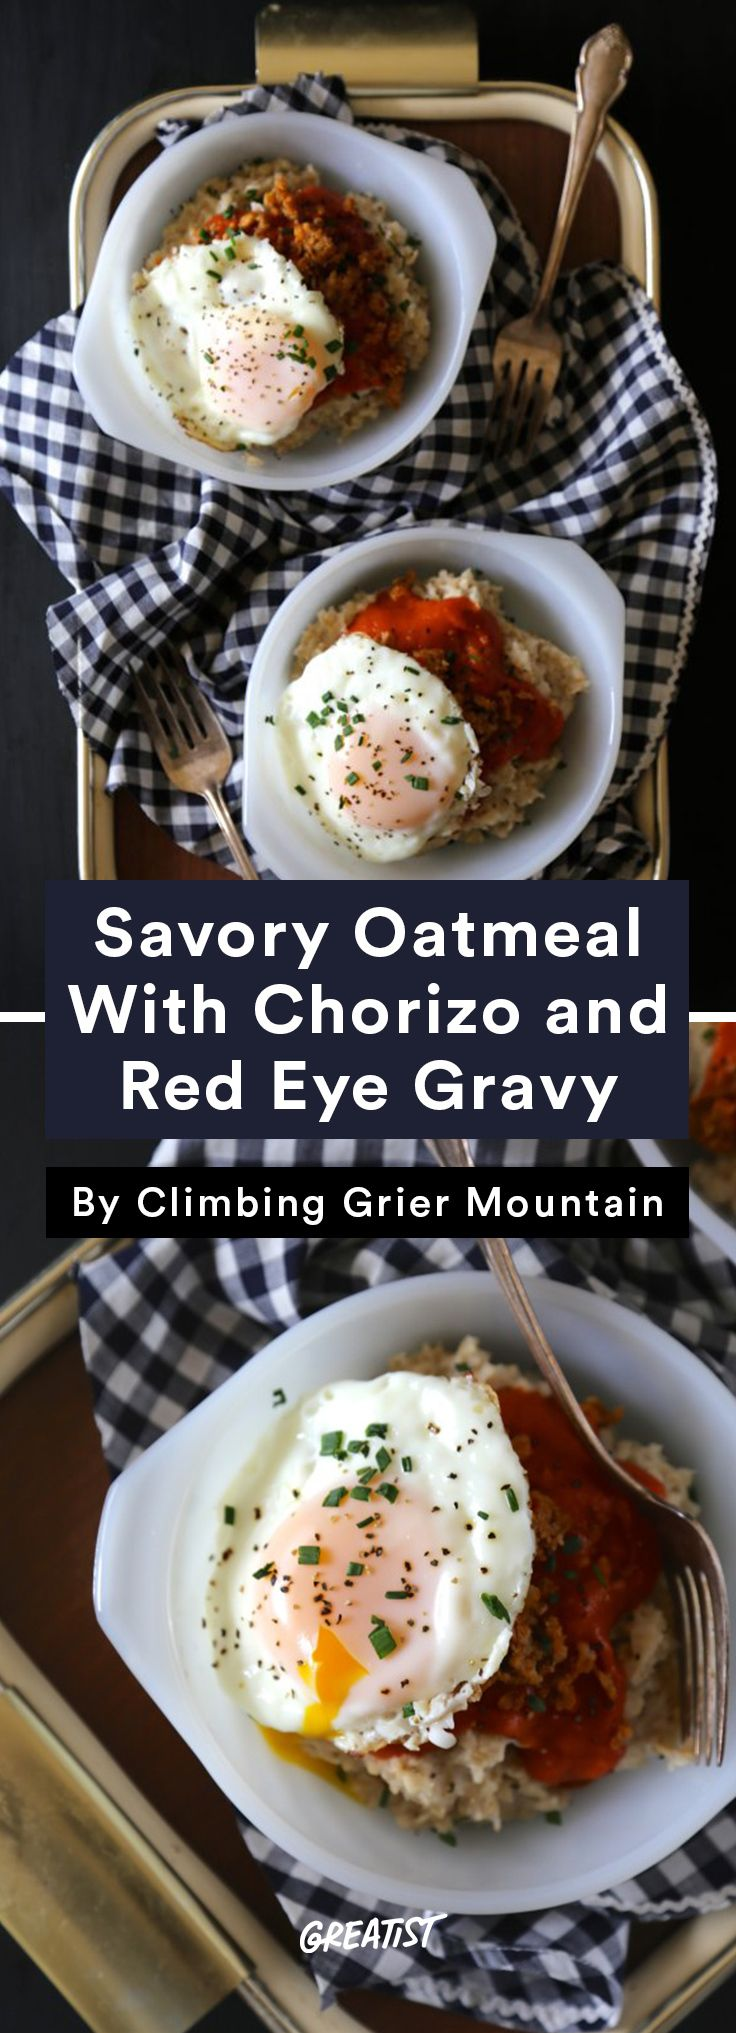 3. Savory Oatmeal With Chorizo and Red Eye Gravy #easy #coffee #recipes http://greatist.com/eat/coffee-recipes-that-use-your-leftover-cup